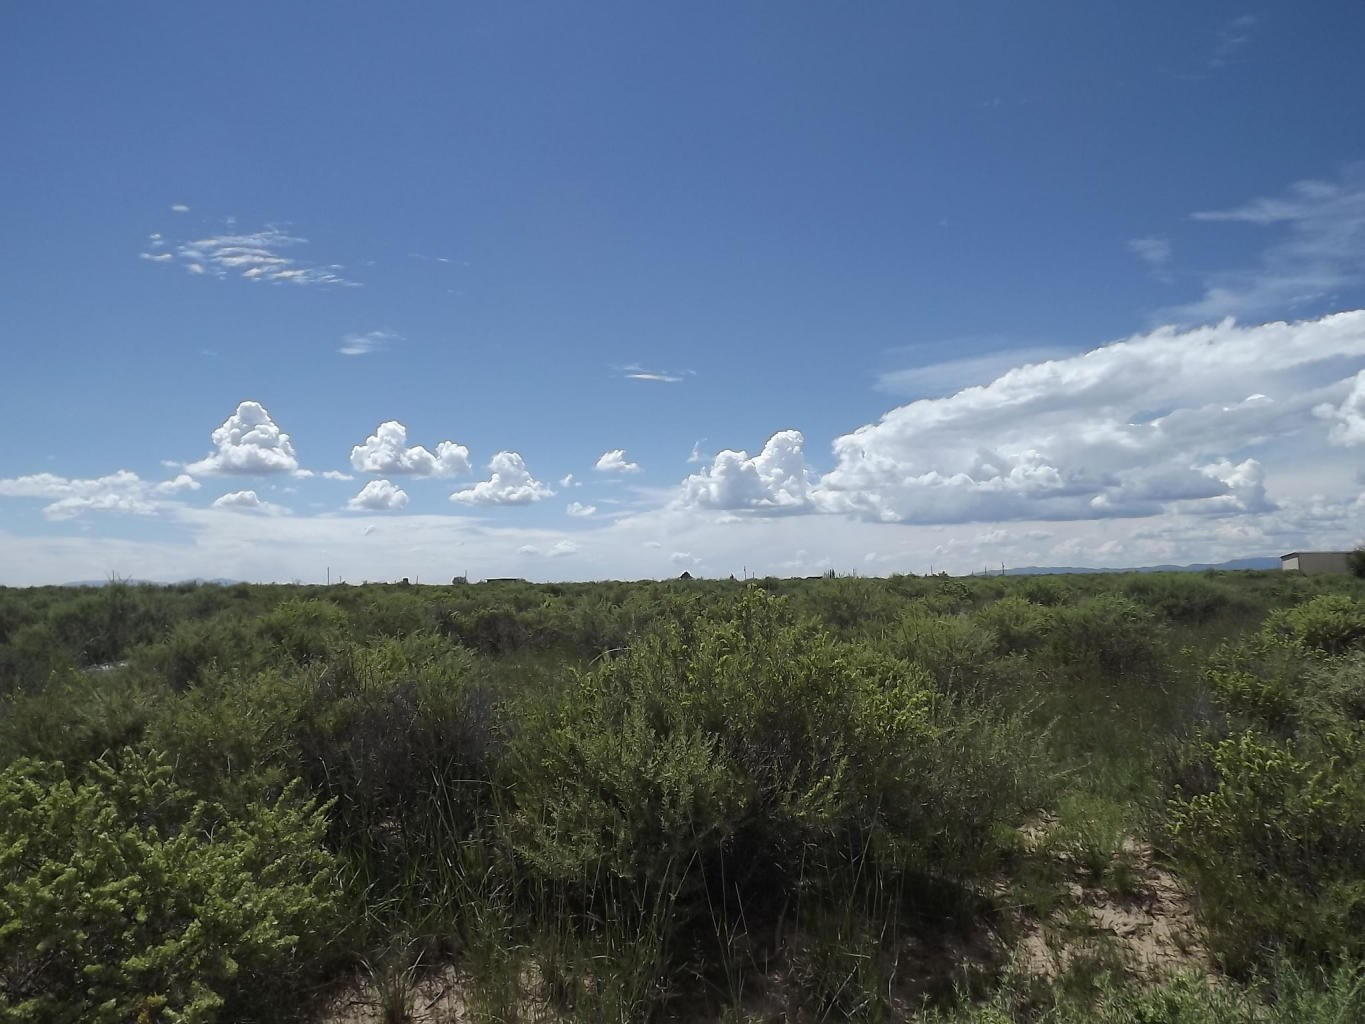 Vacant Land For Sale 2.39 Acres South of Moriarty NM